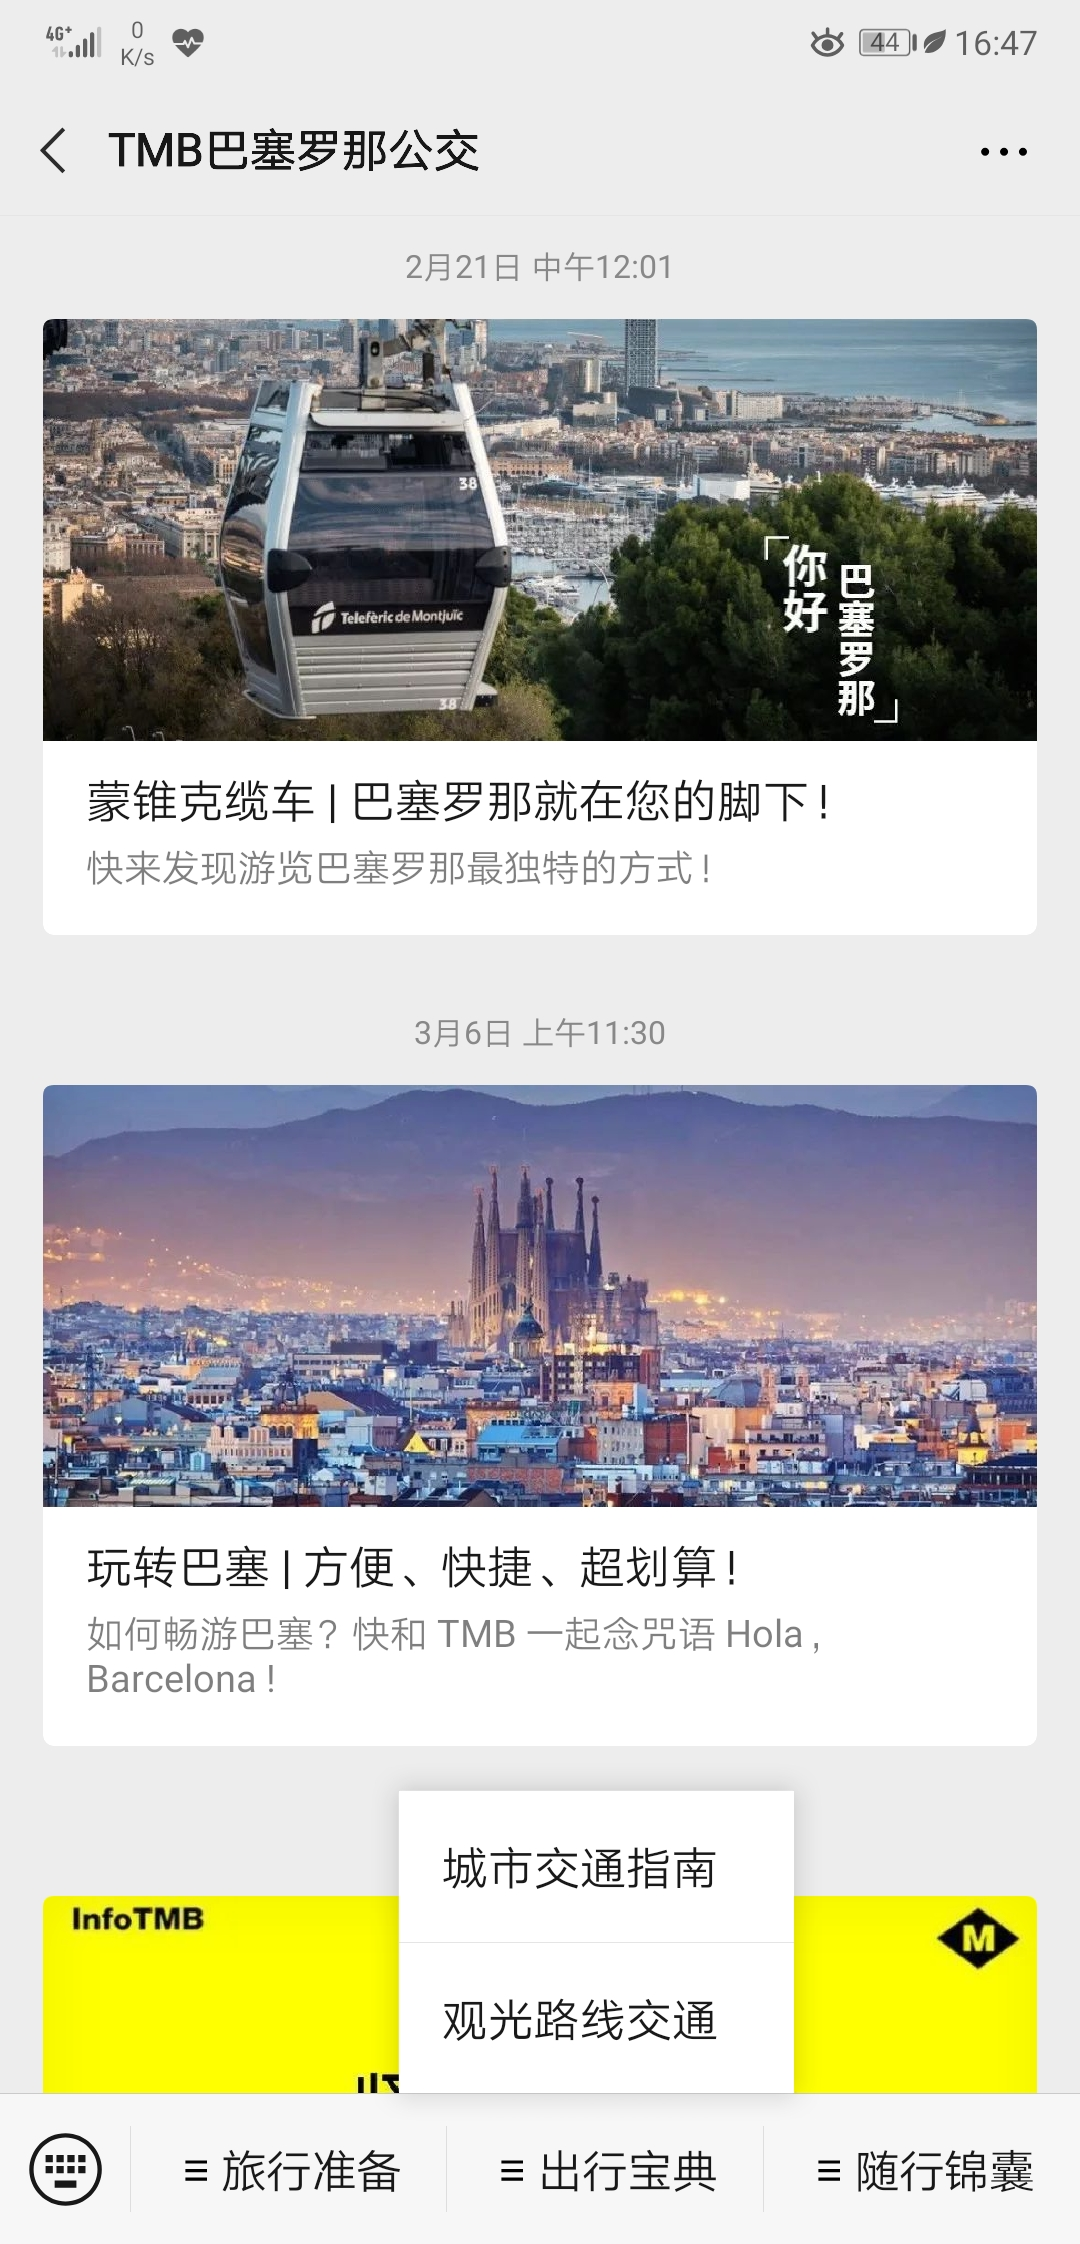 Transports Metropolitans de Barcelona WeChat official account